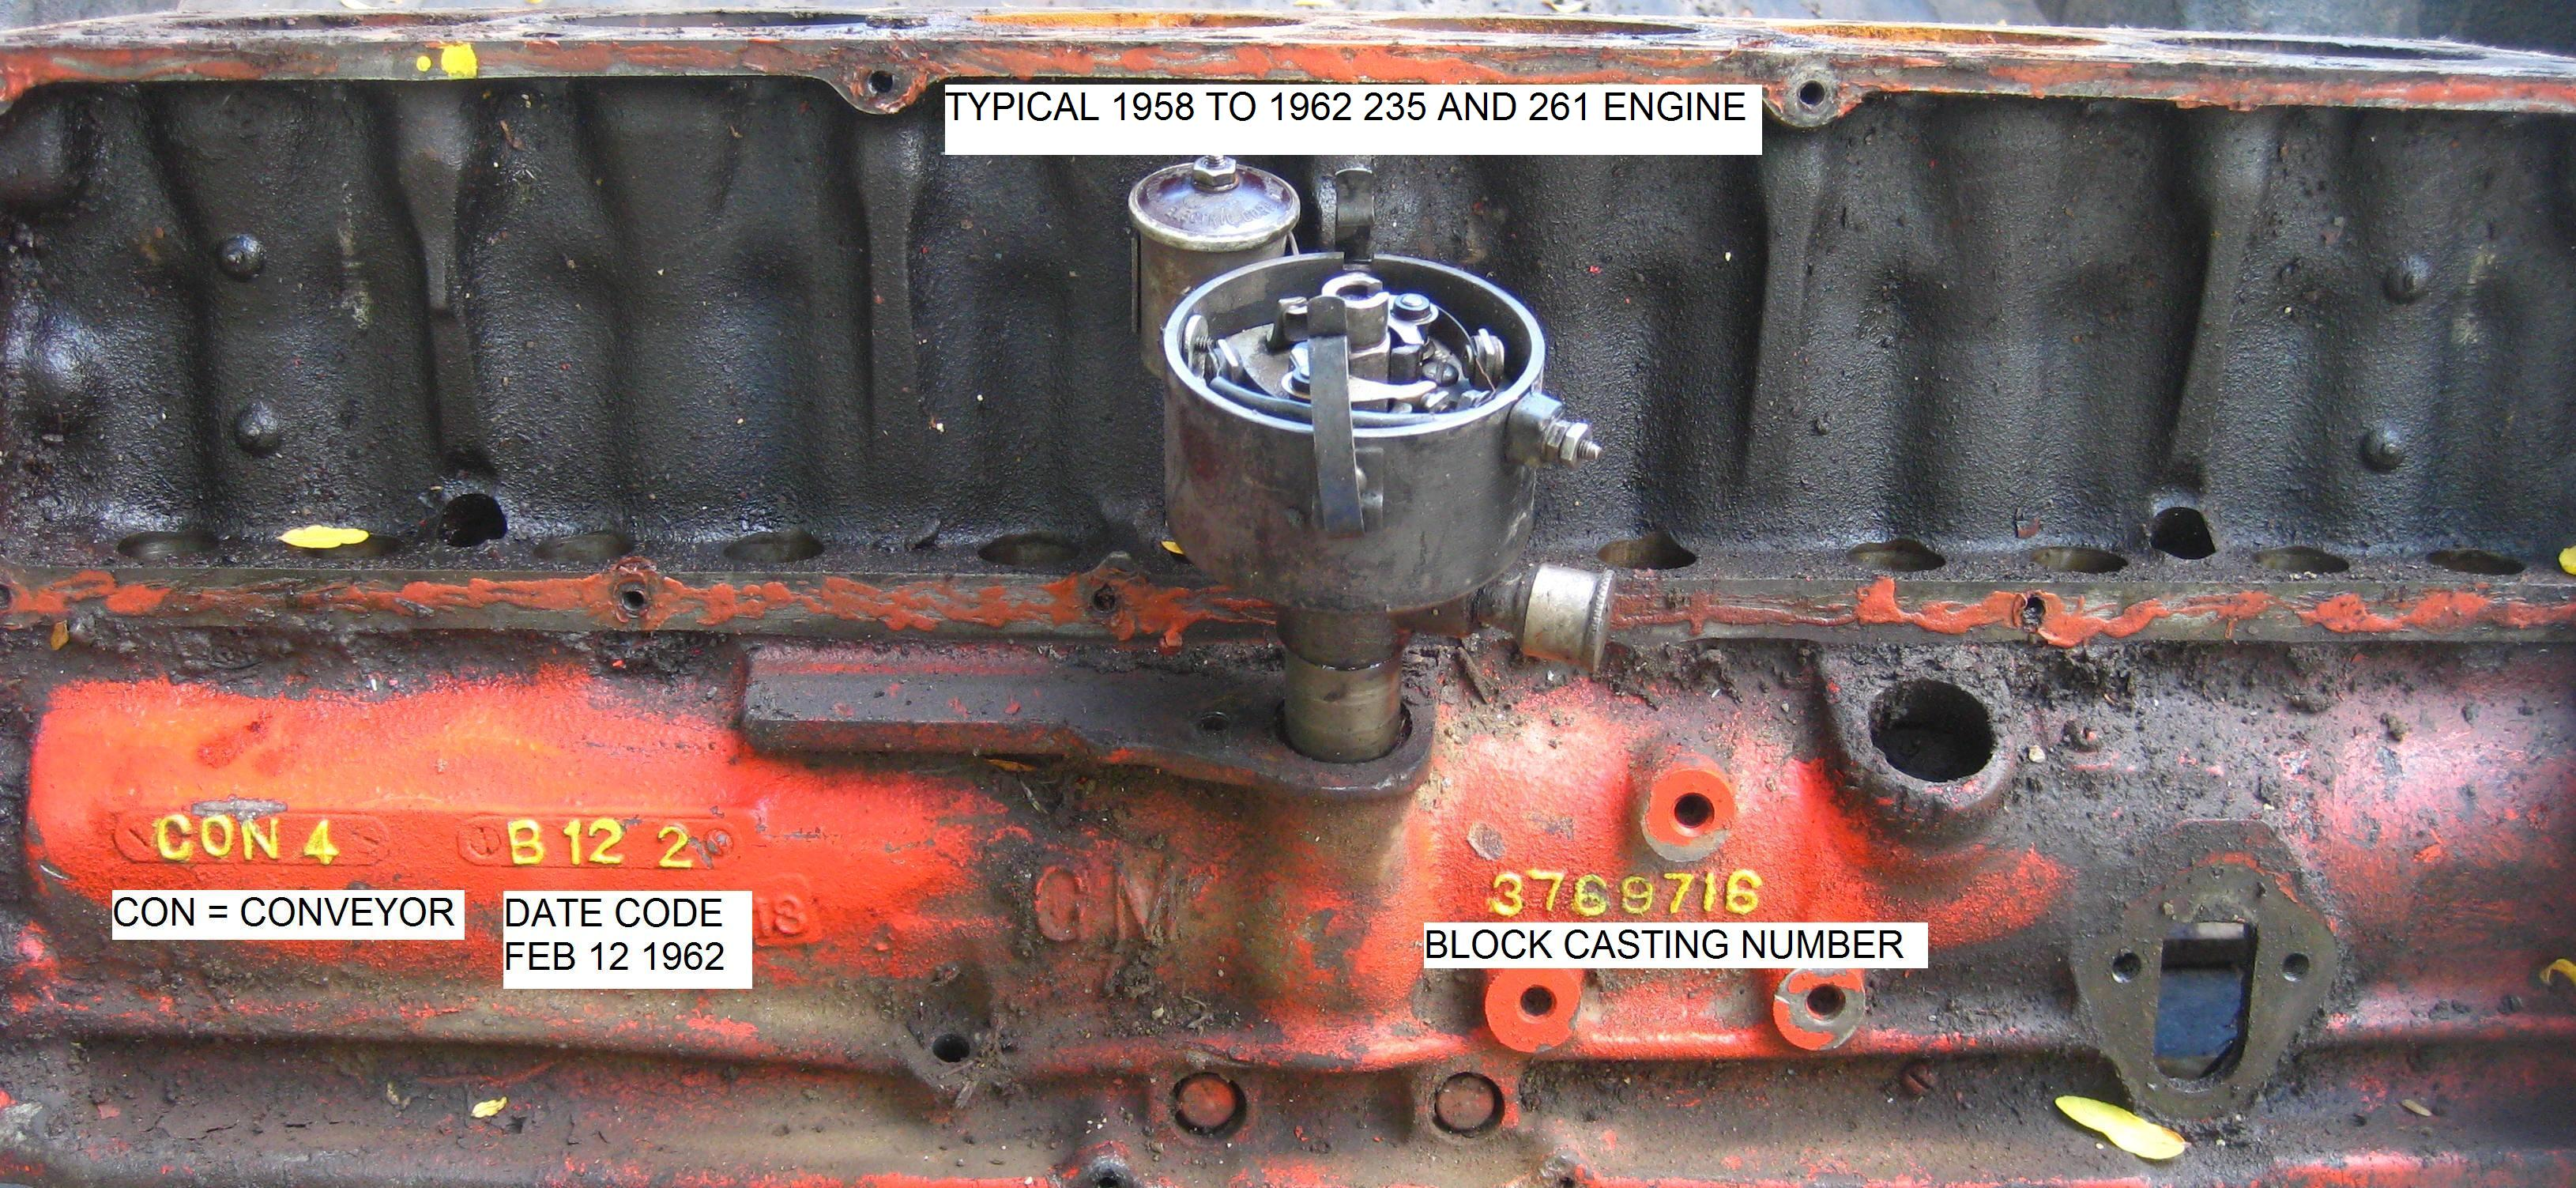 Chevy Six Cylinder Casting Numbers - The 1947 - Present Chevrolet & GMC Truck Message Board Network